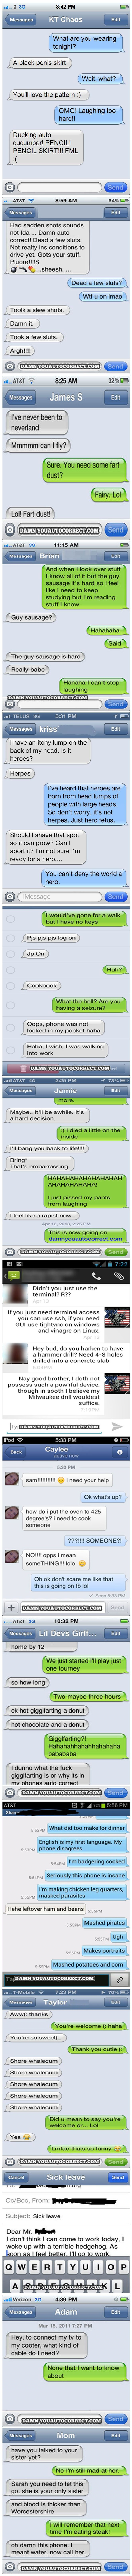 15 More of the Best Autocorrect Struggles on http://doiamuseyou.com/15-more-of-the-best-autocorrect-struggles